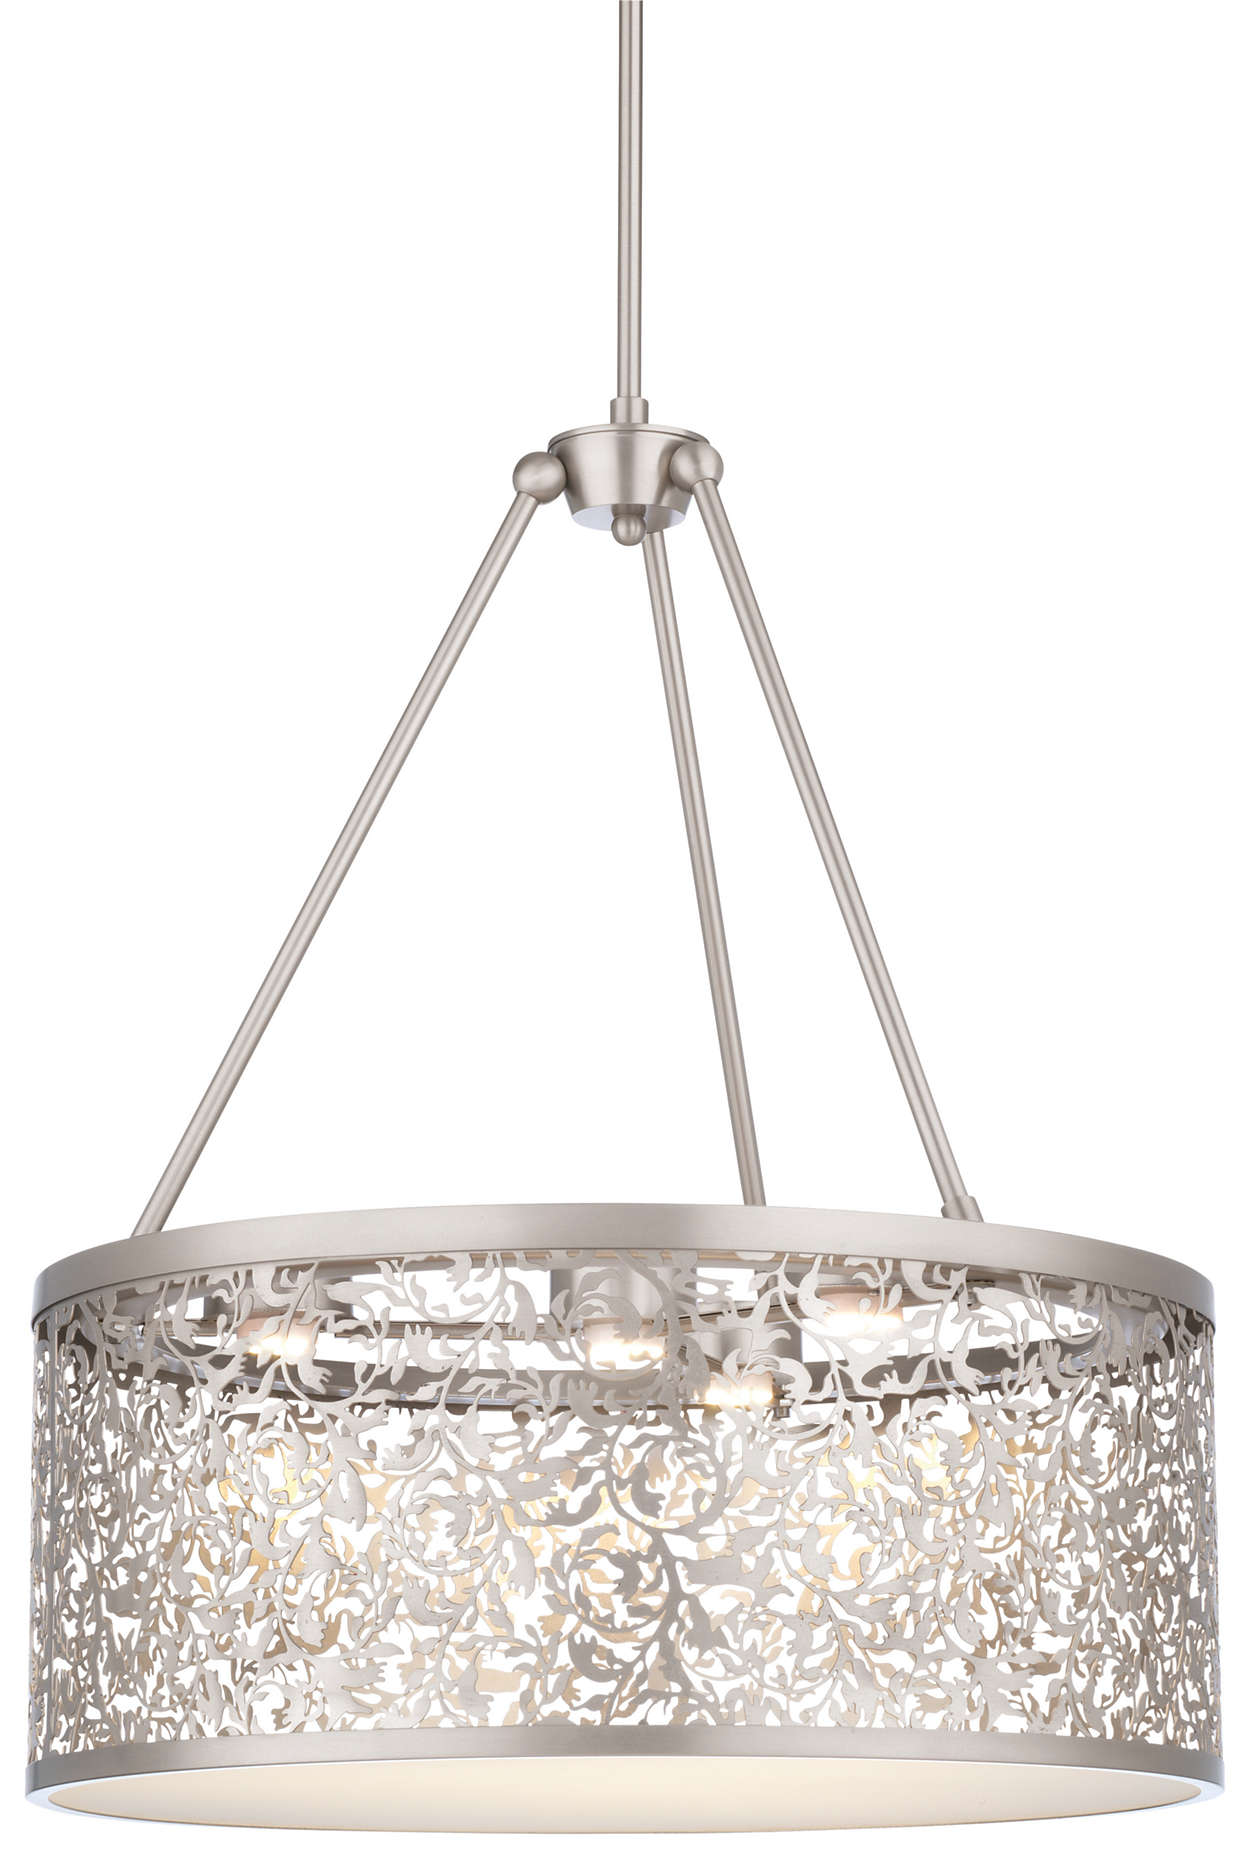 Brocade 3-light LED Pendant, Brushed Nickel finish